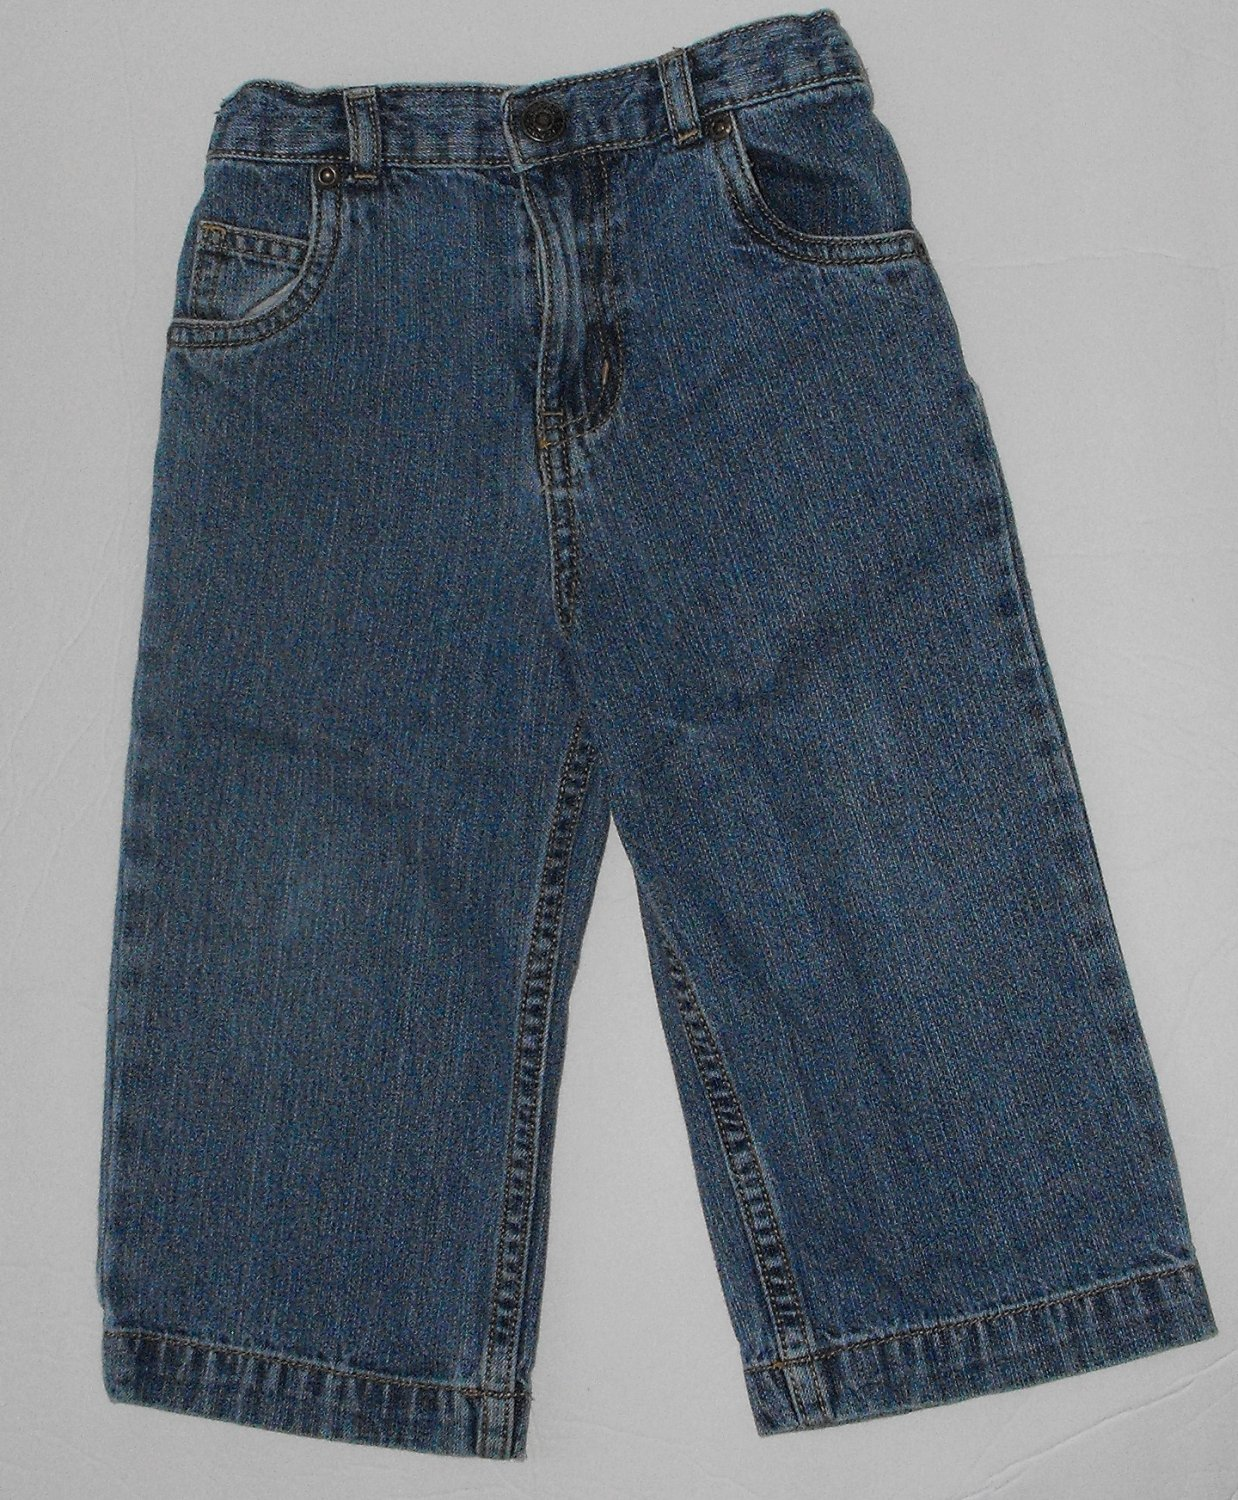 George Baby Boys 18-24 Months Jeans